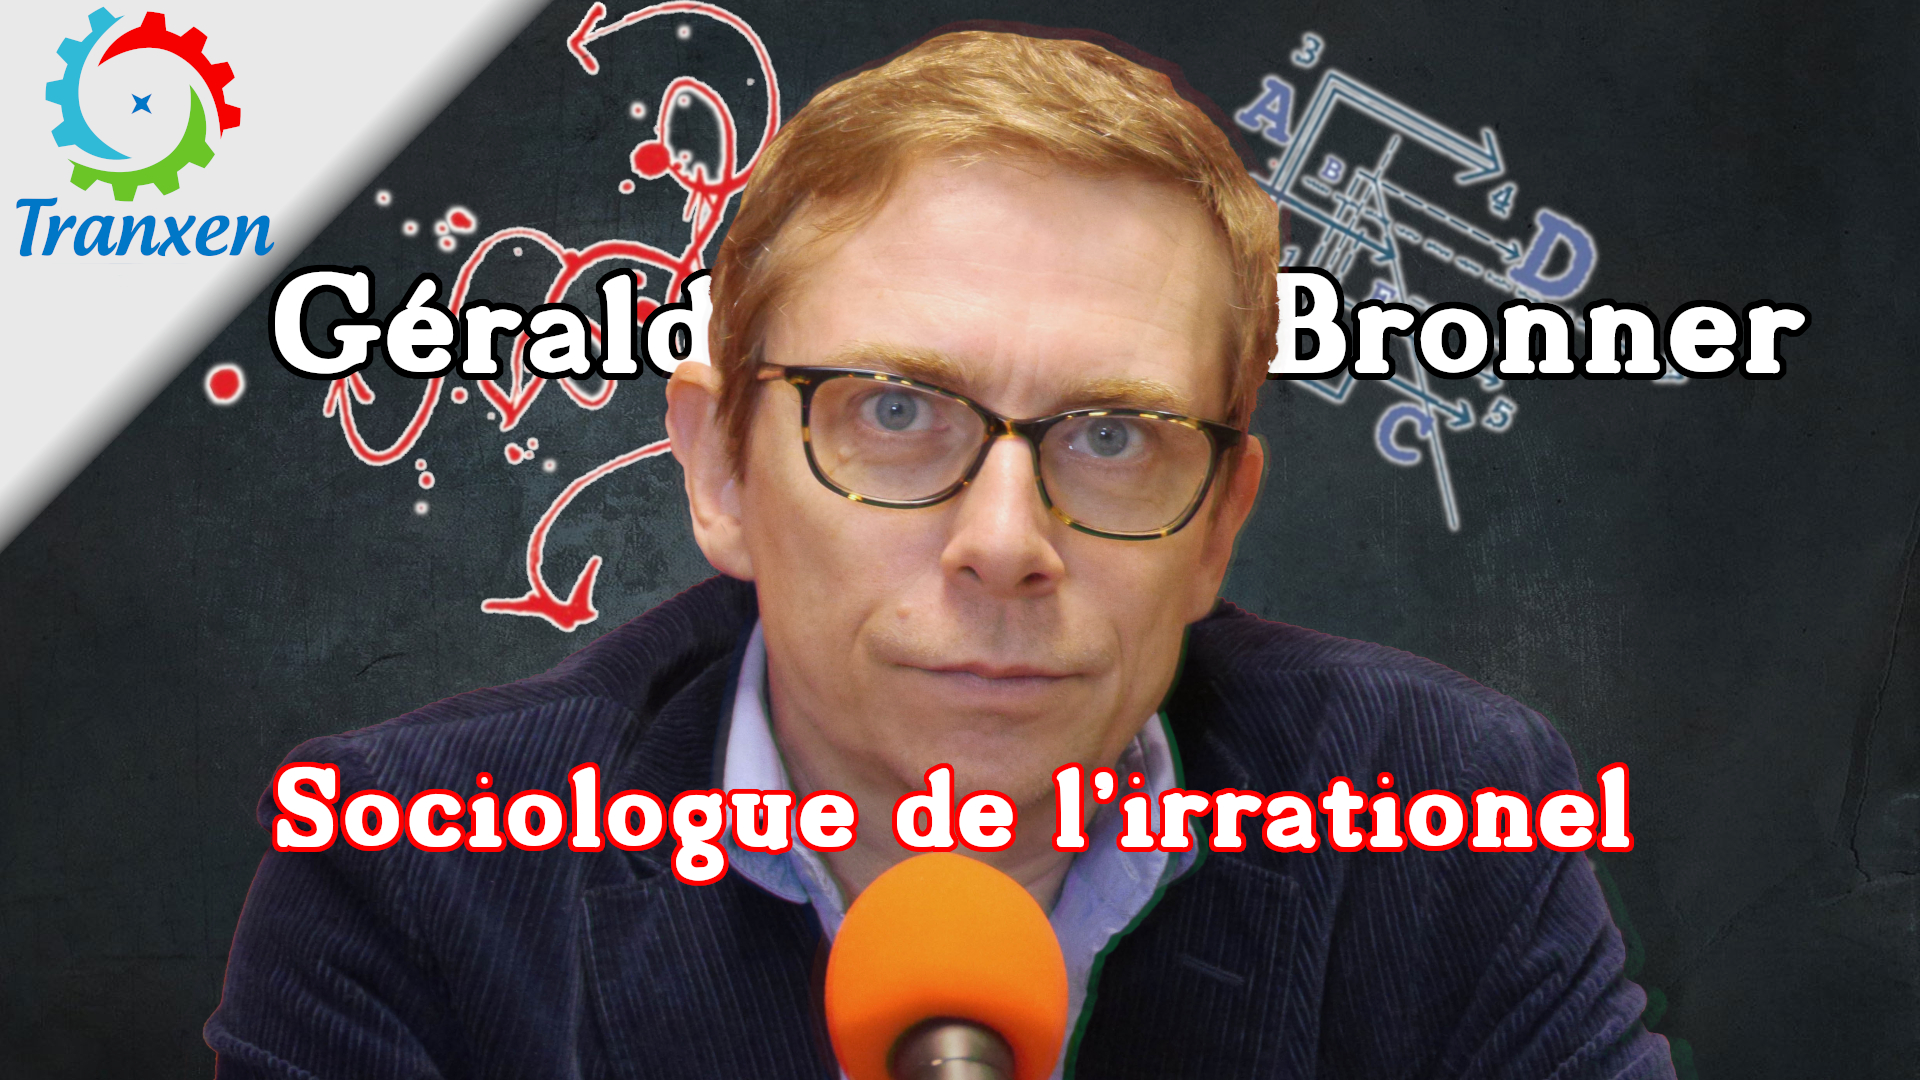 Gérald Bronner, sociologue de l'irrationnel